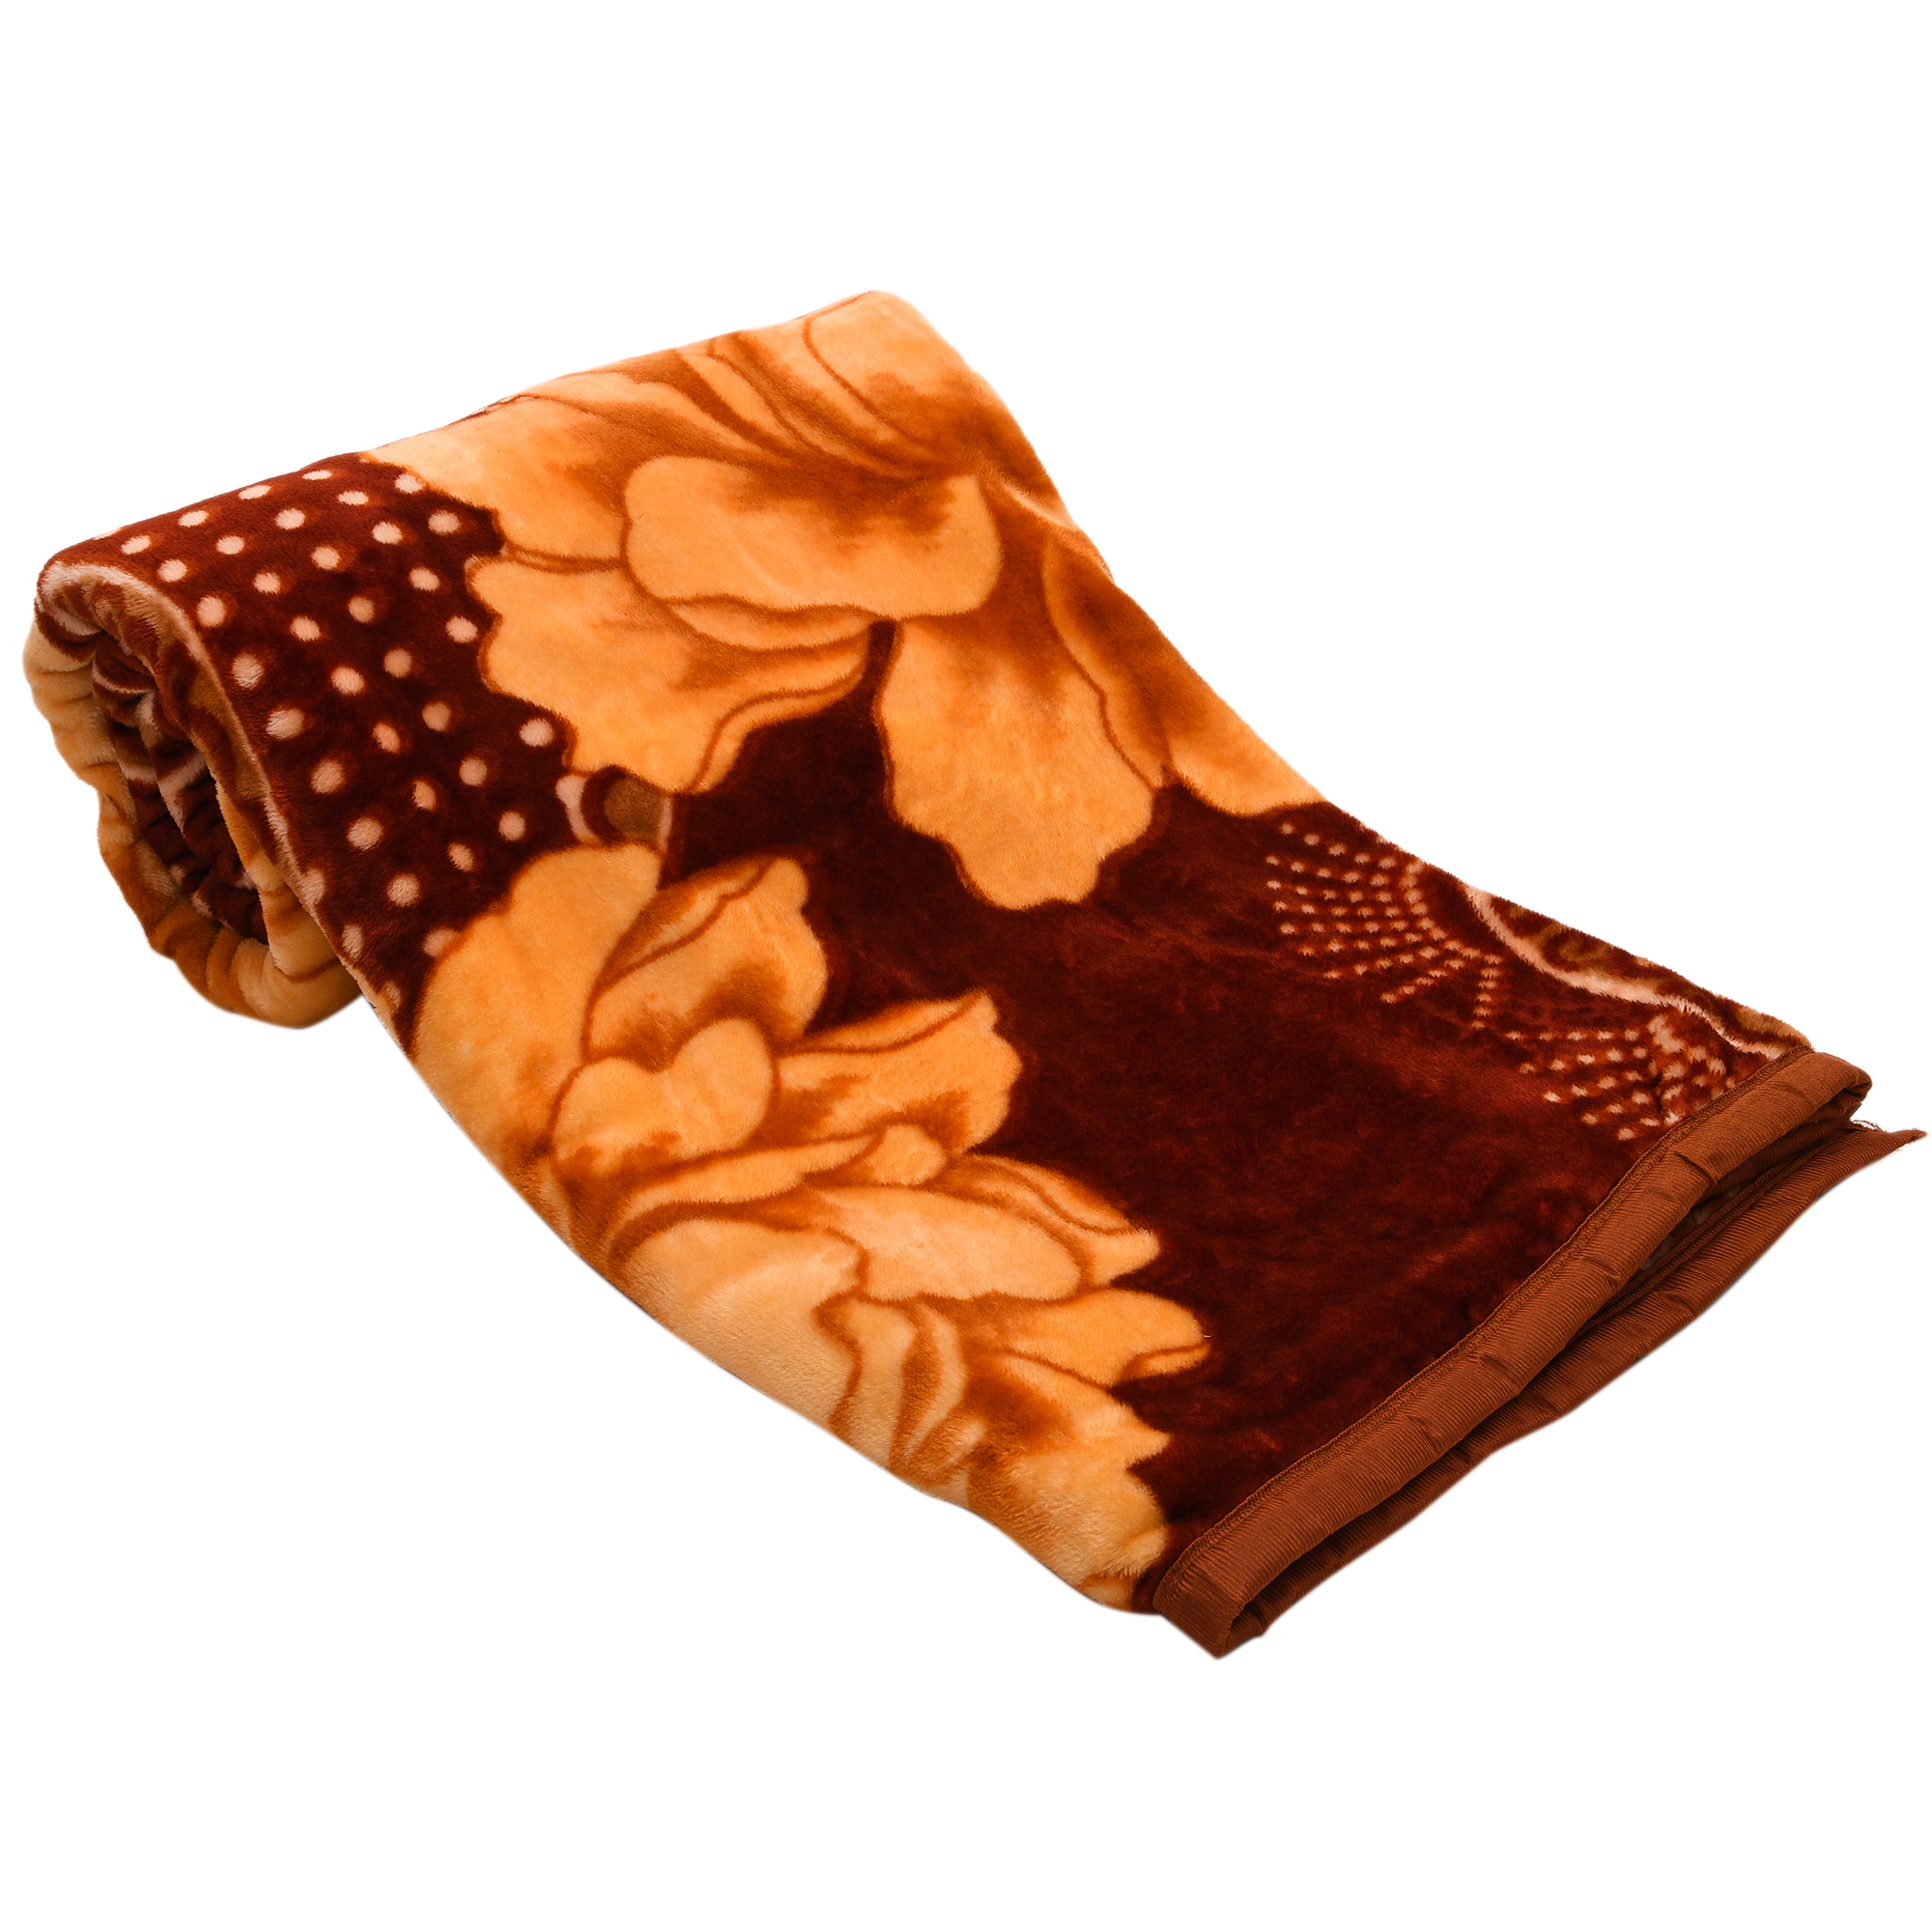 Soft Luxurious Embossed Very Warm Blankets Solid Colour Soft Ultra Floral Microfiber Double Bed Mink Winter Blanket 021